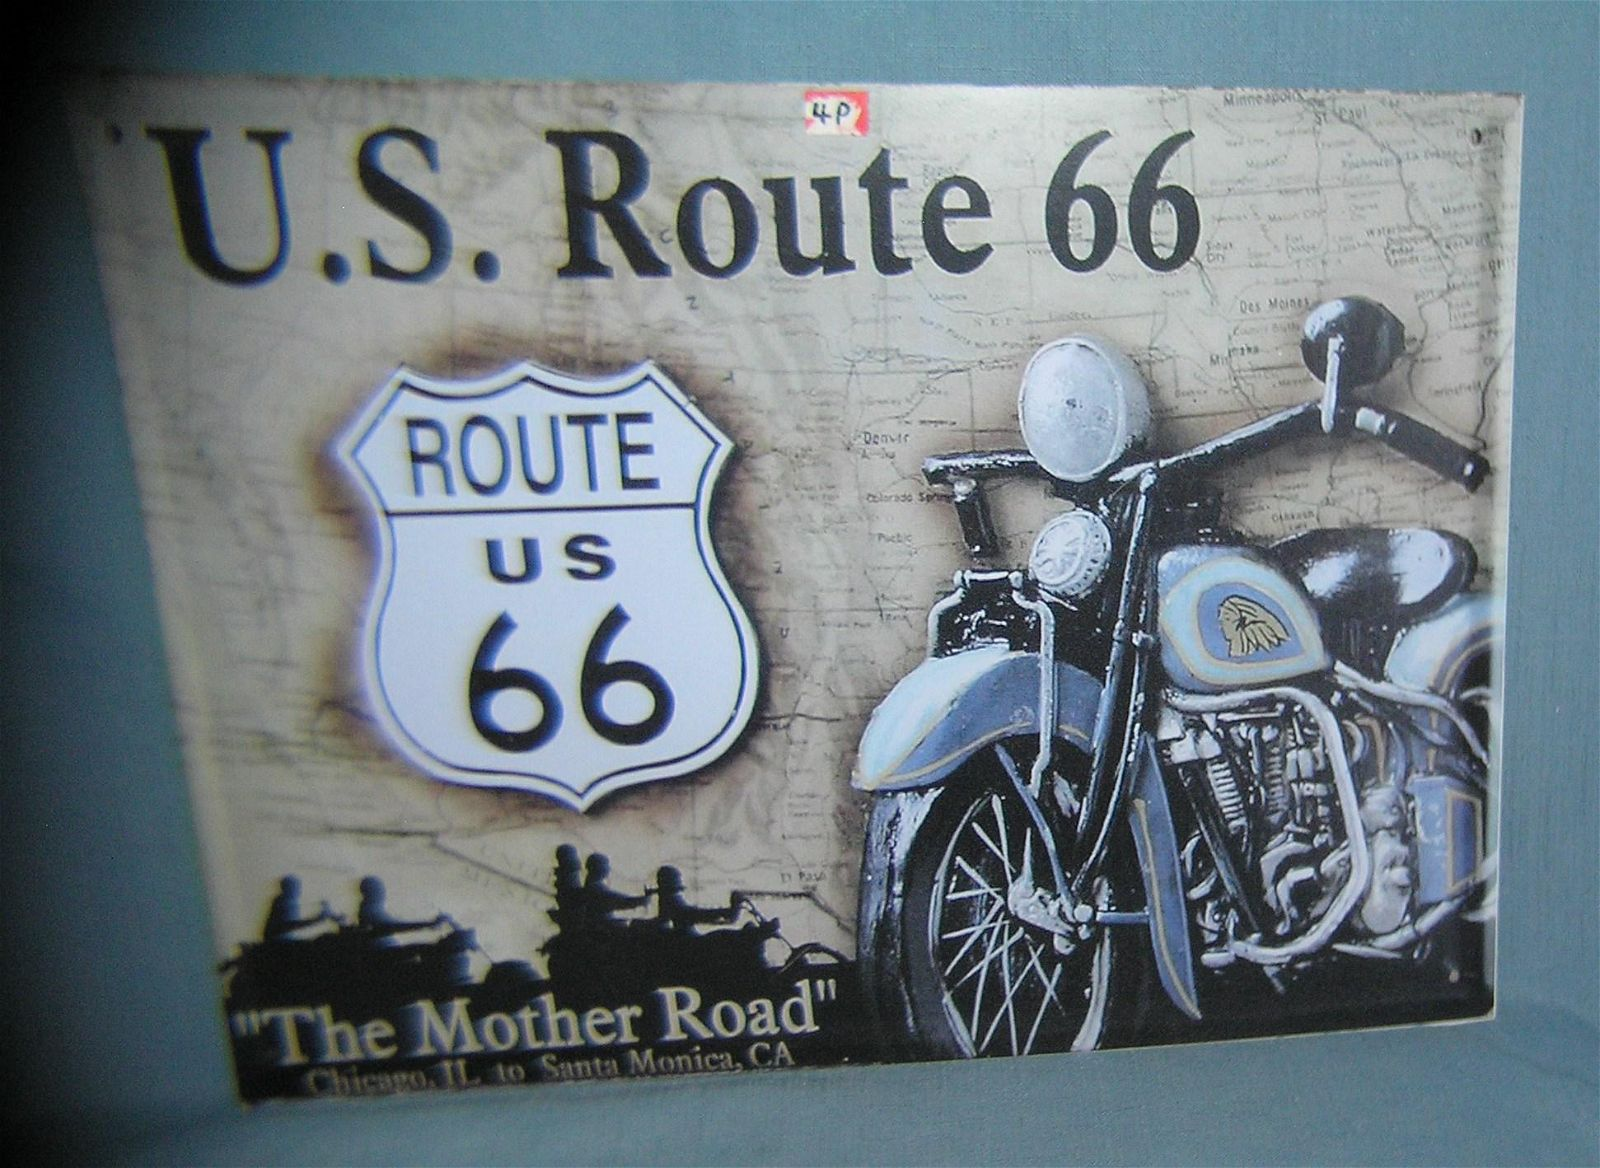 US Route 66 the Mother Road retro style sign